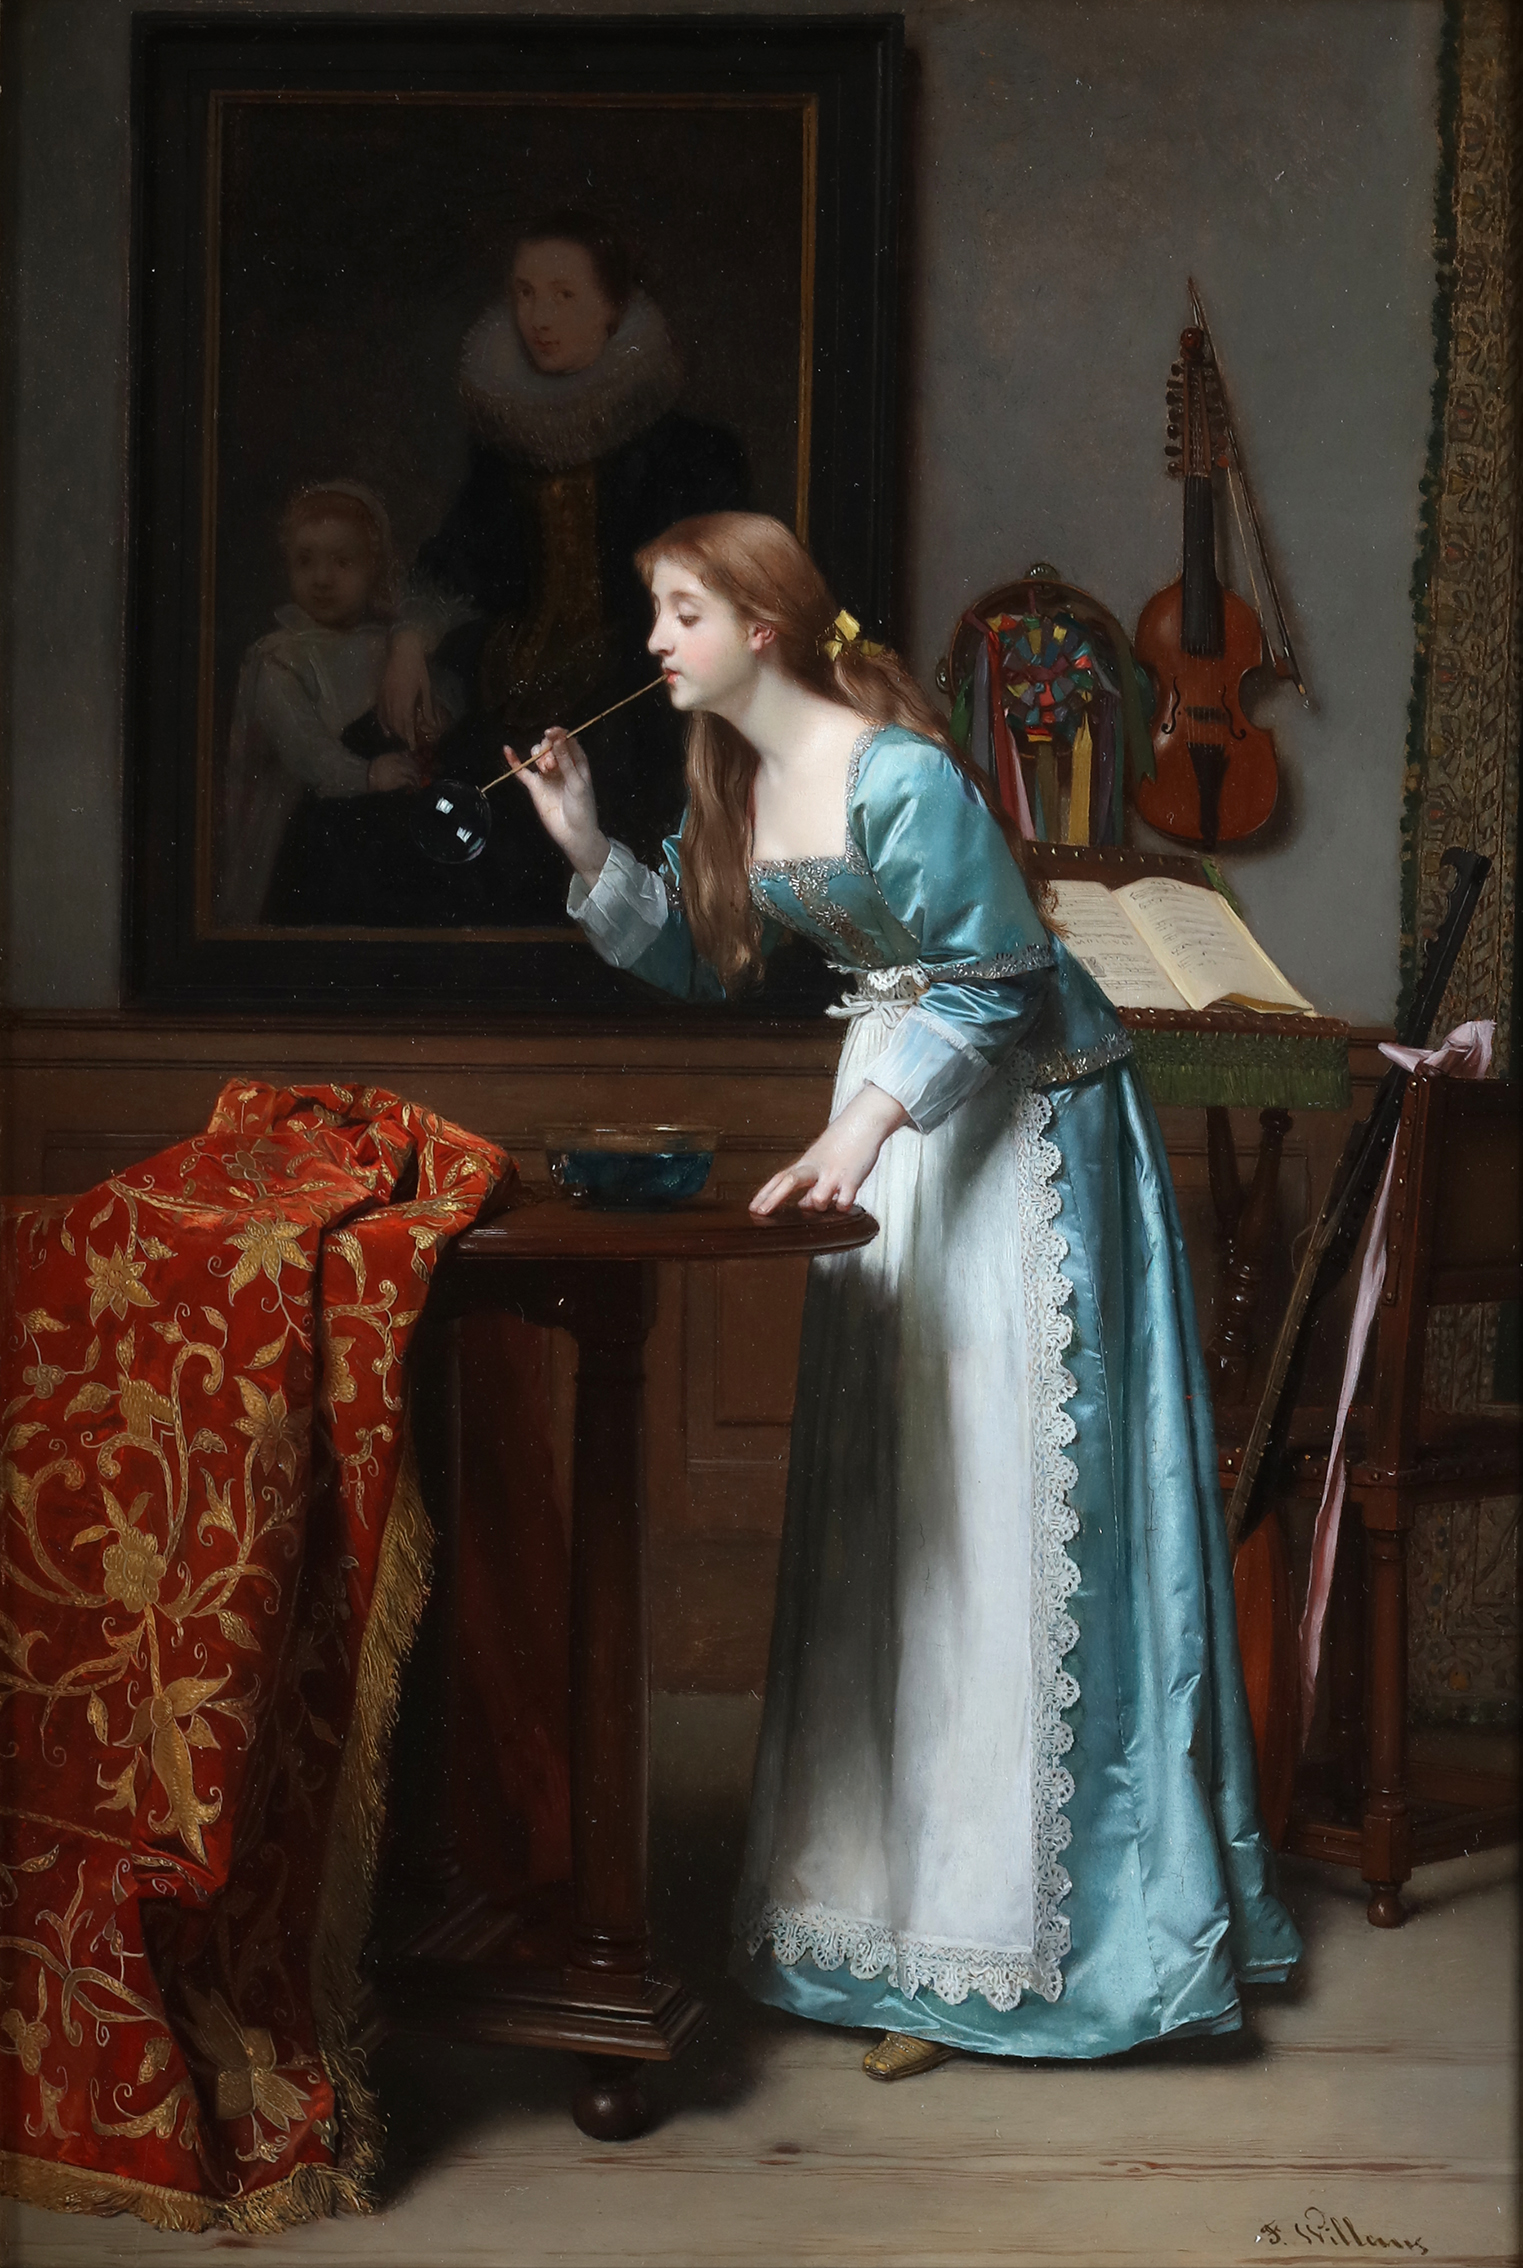 Young girl blowing bubbles in front of a painting of Cornelis de Vos